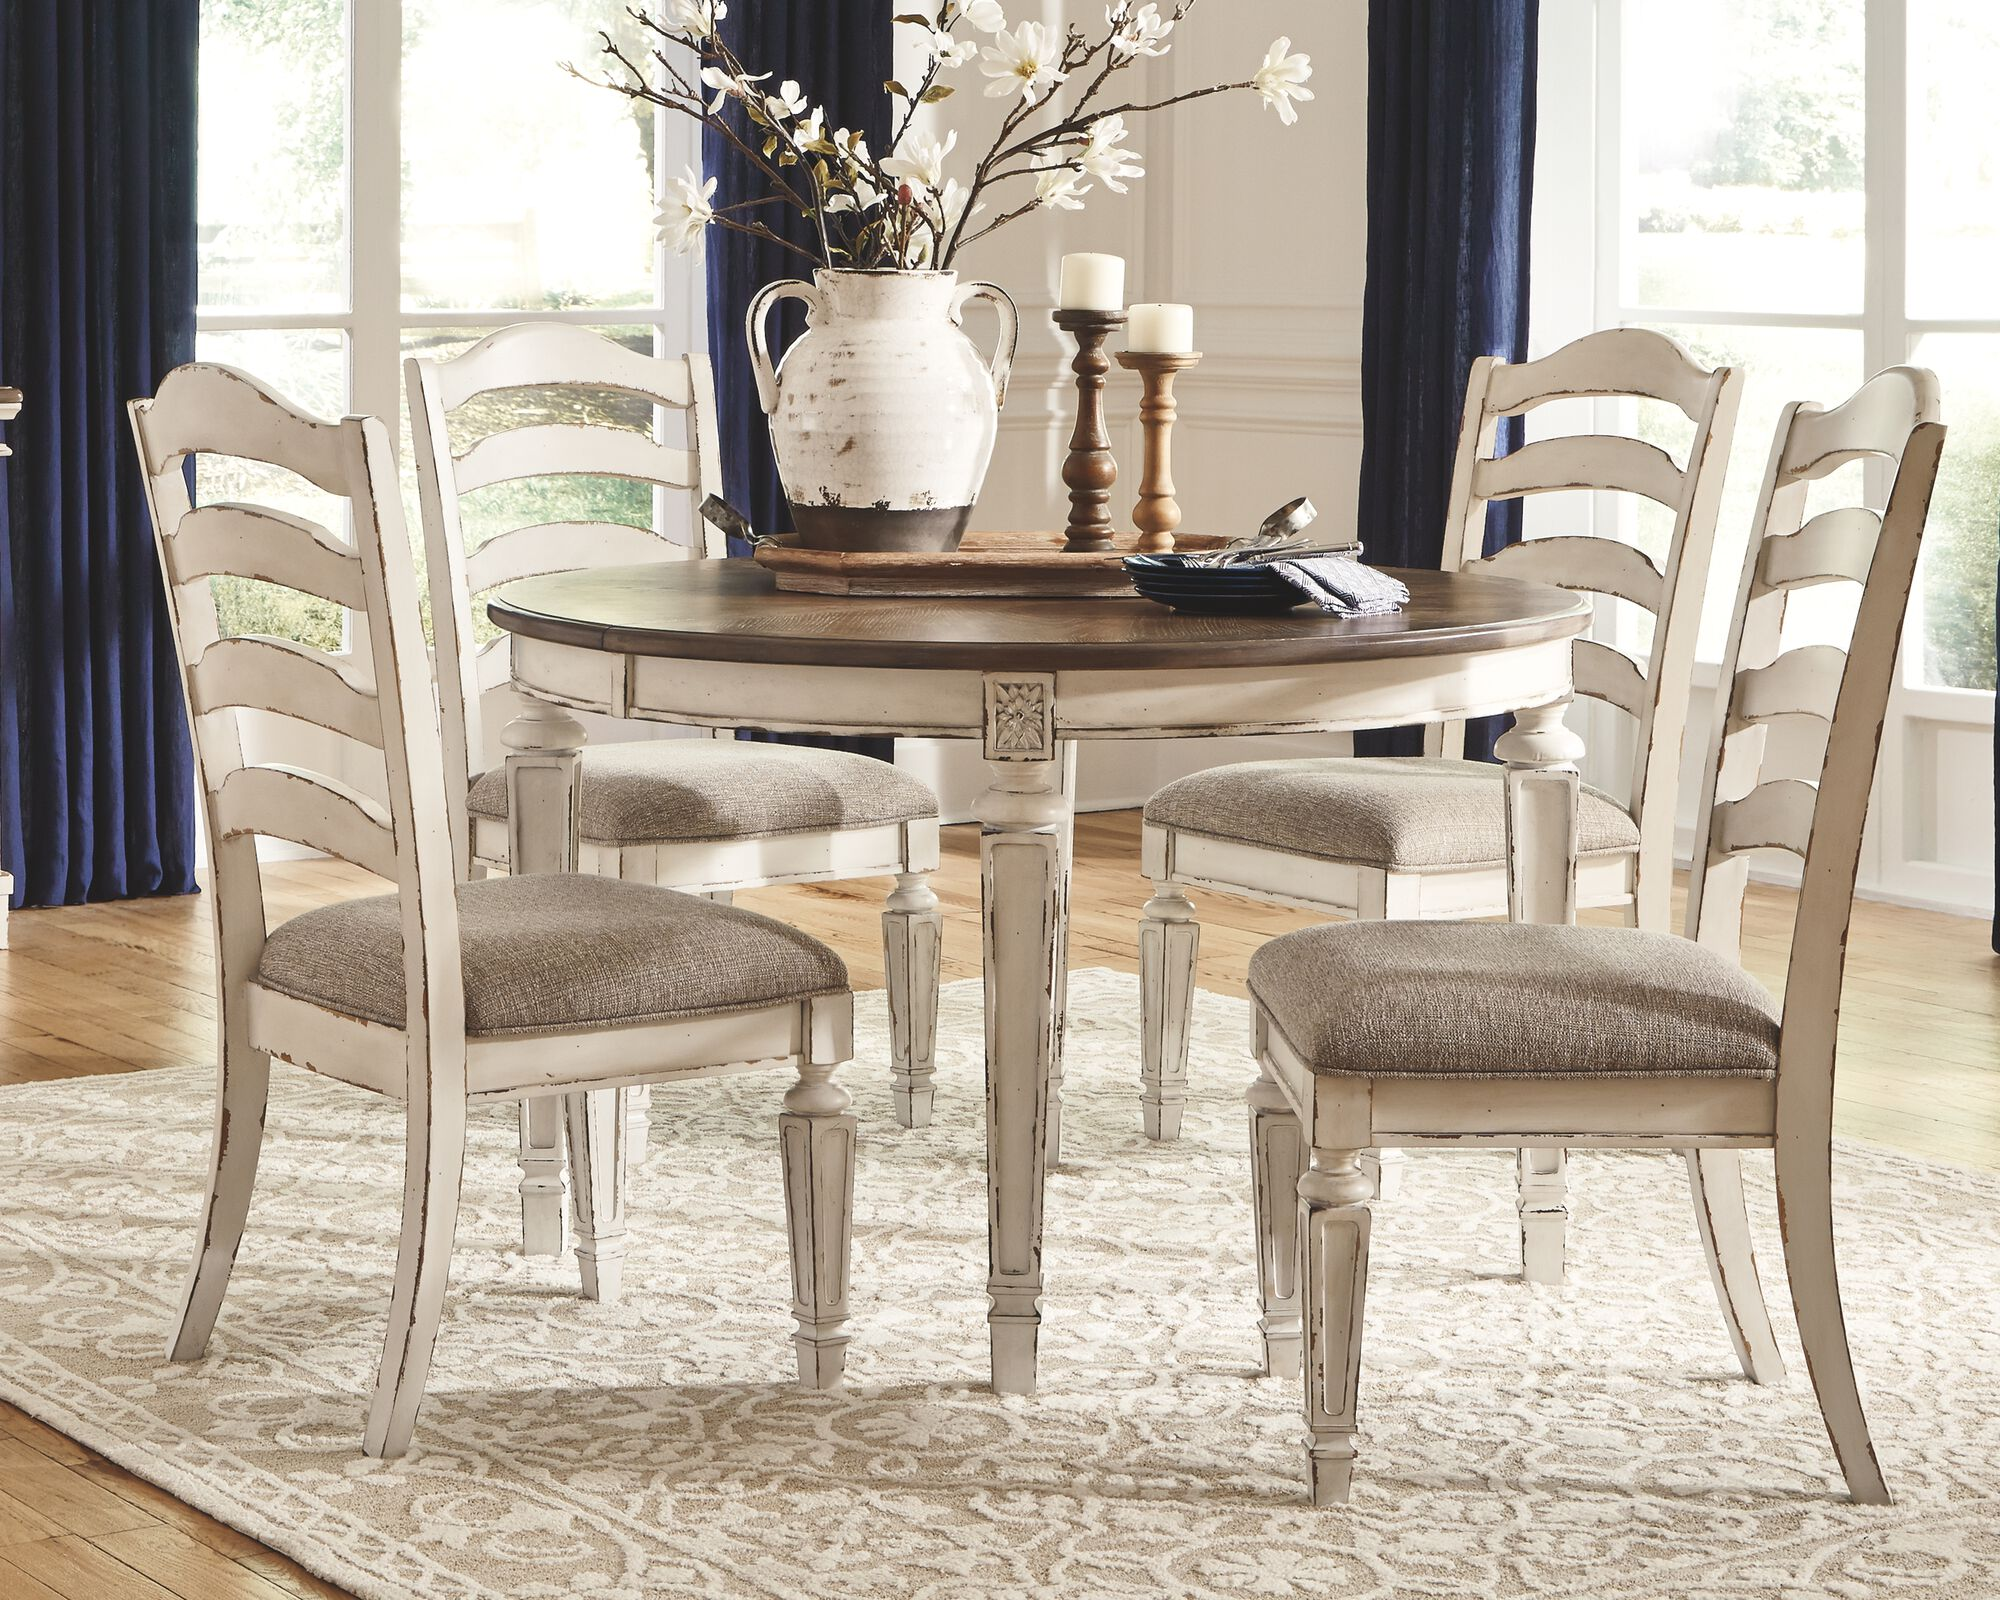 realyn chipped white 5 pc oval dining room extension